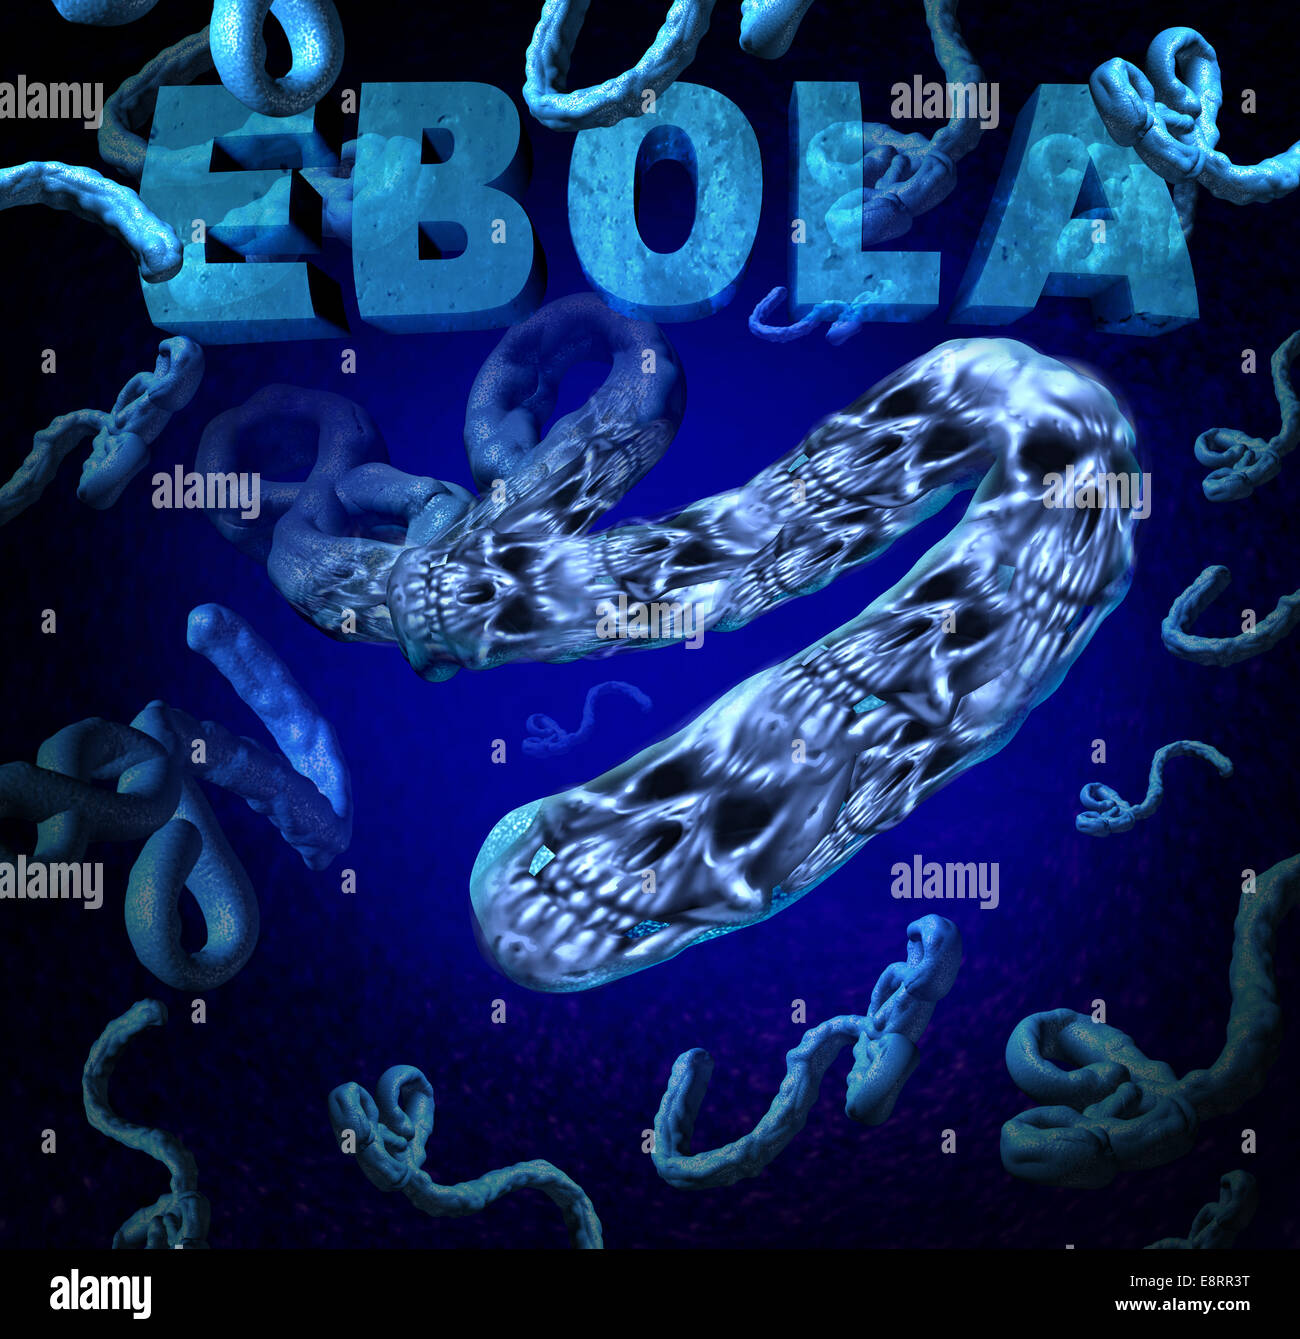 Ebola outbreak danger as a deadly virus disease medical concept with death skull symbols representing dangerous - Stock Image